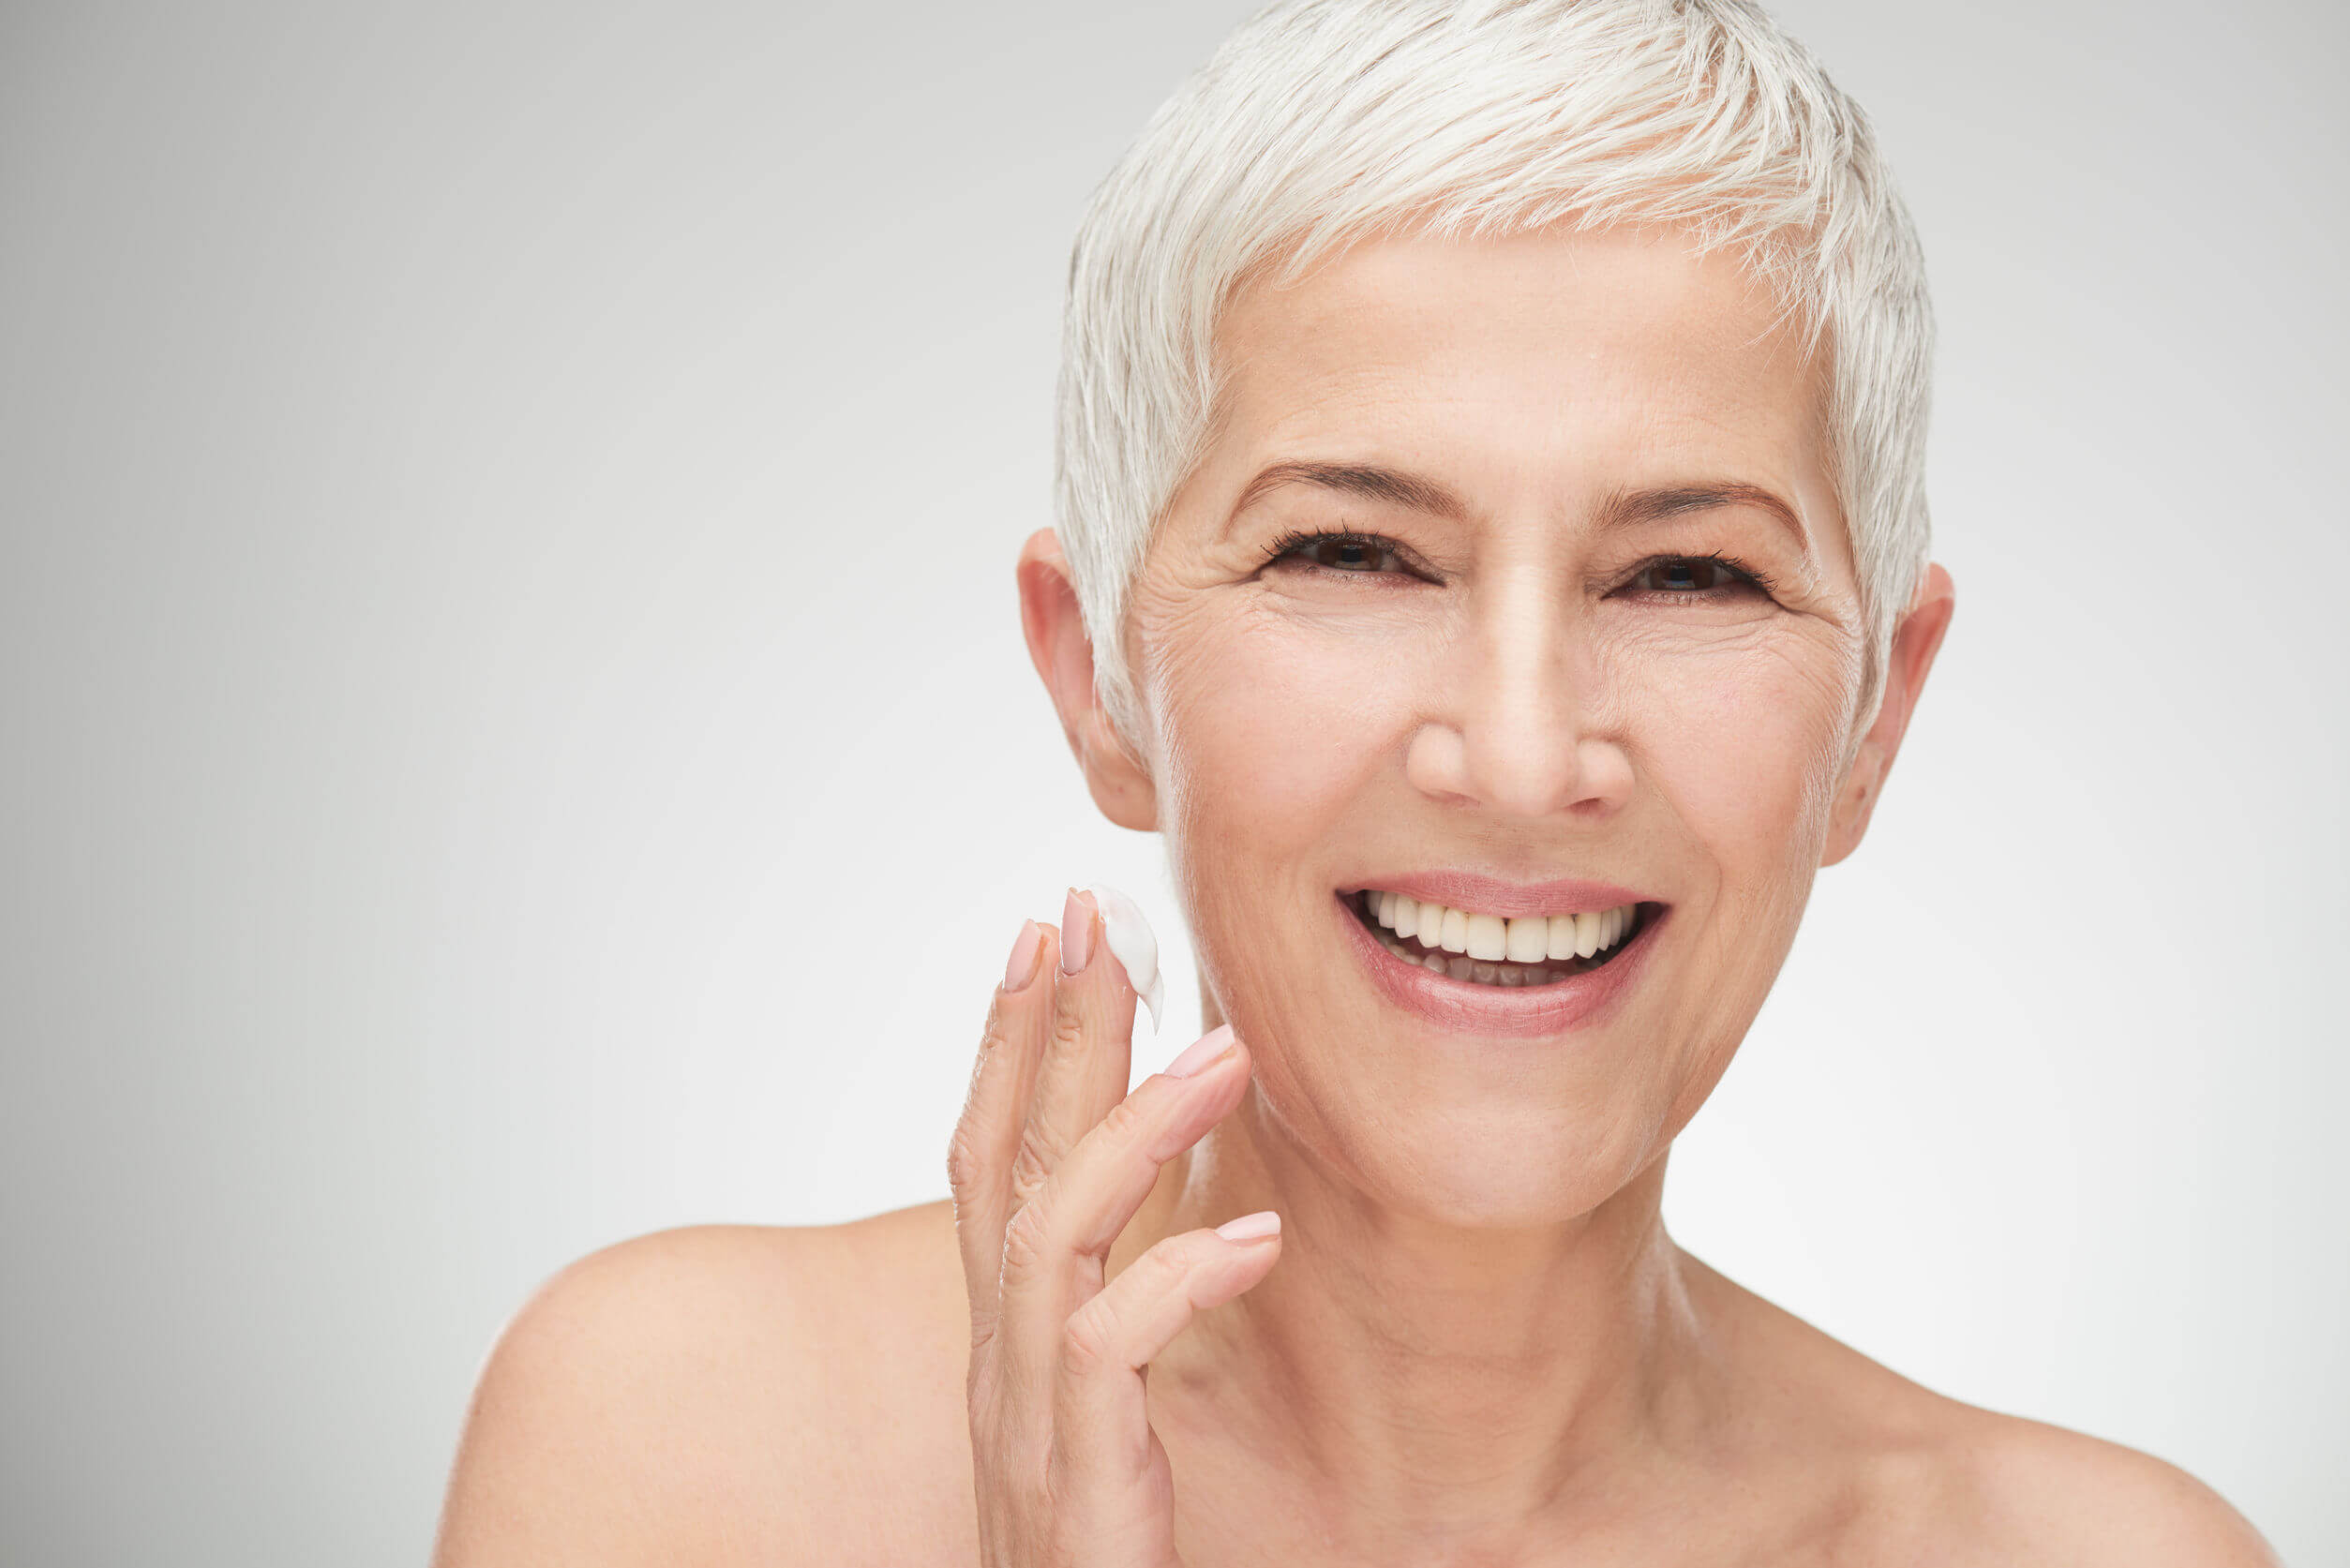 4 Makeup Tips For Women Over 40 and Fabulous!